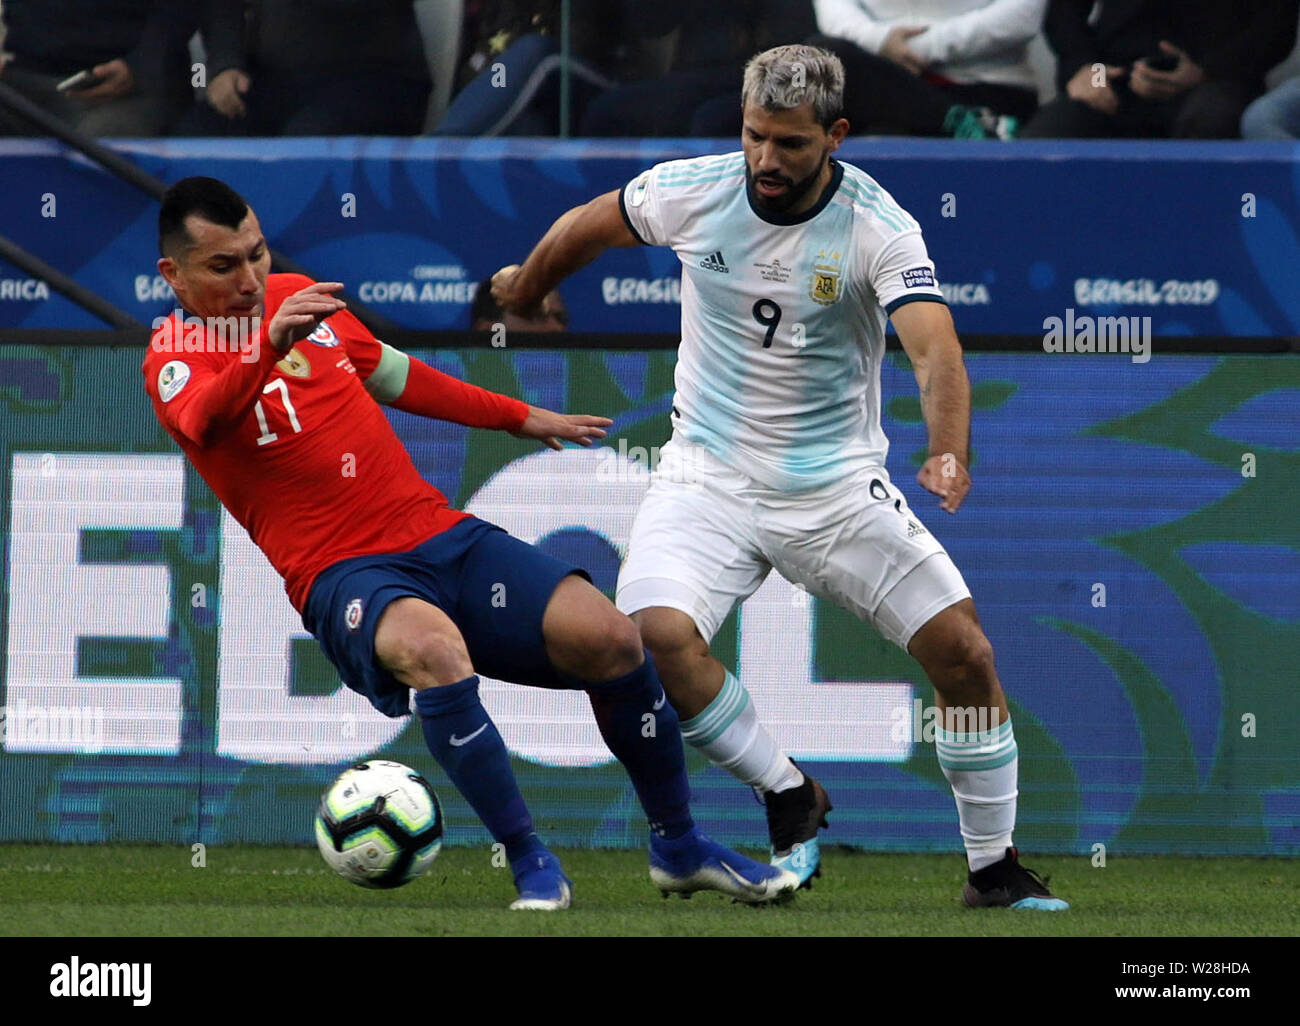 Sao Paulo, Brazil. 6th July, 2019. Argentina's Aguero (R) competes with Gary Medel of Chile during the 3rd place match of Copa America 2019 between Argentina and Chile in Sao Paulo, Brazil, July 6, 2019. Credit: Rahel Patrasso/Xinhua/Alamy Live News - Stock Image